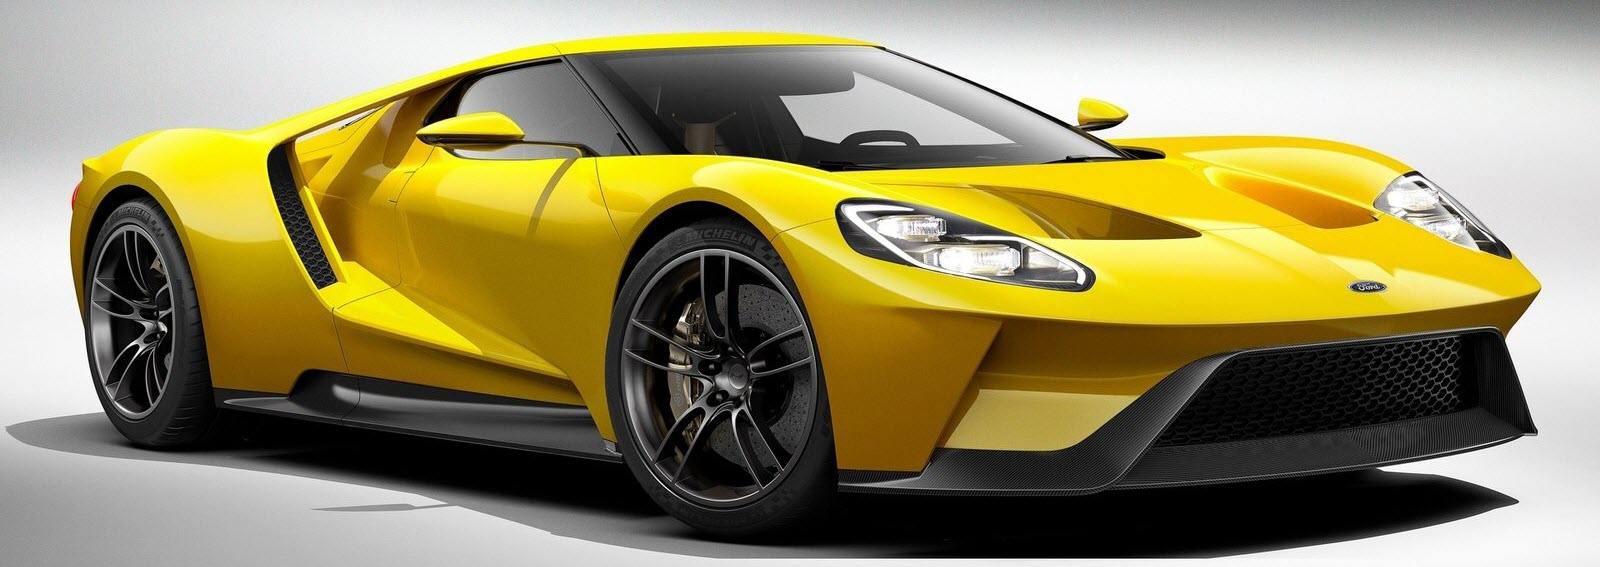 Ford Gt  Outstanding Acceleration And Handling With Improved Efficiency